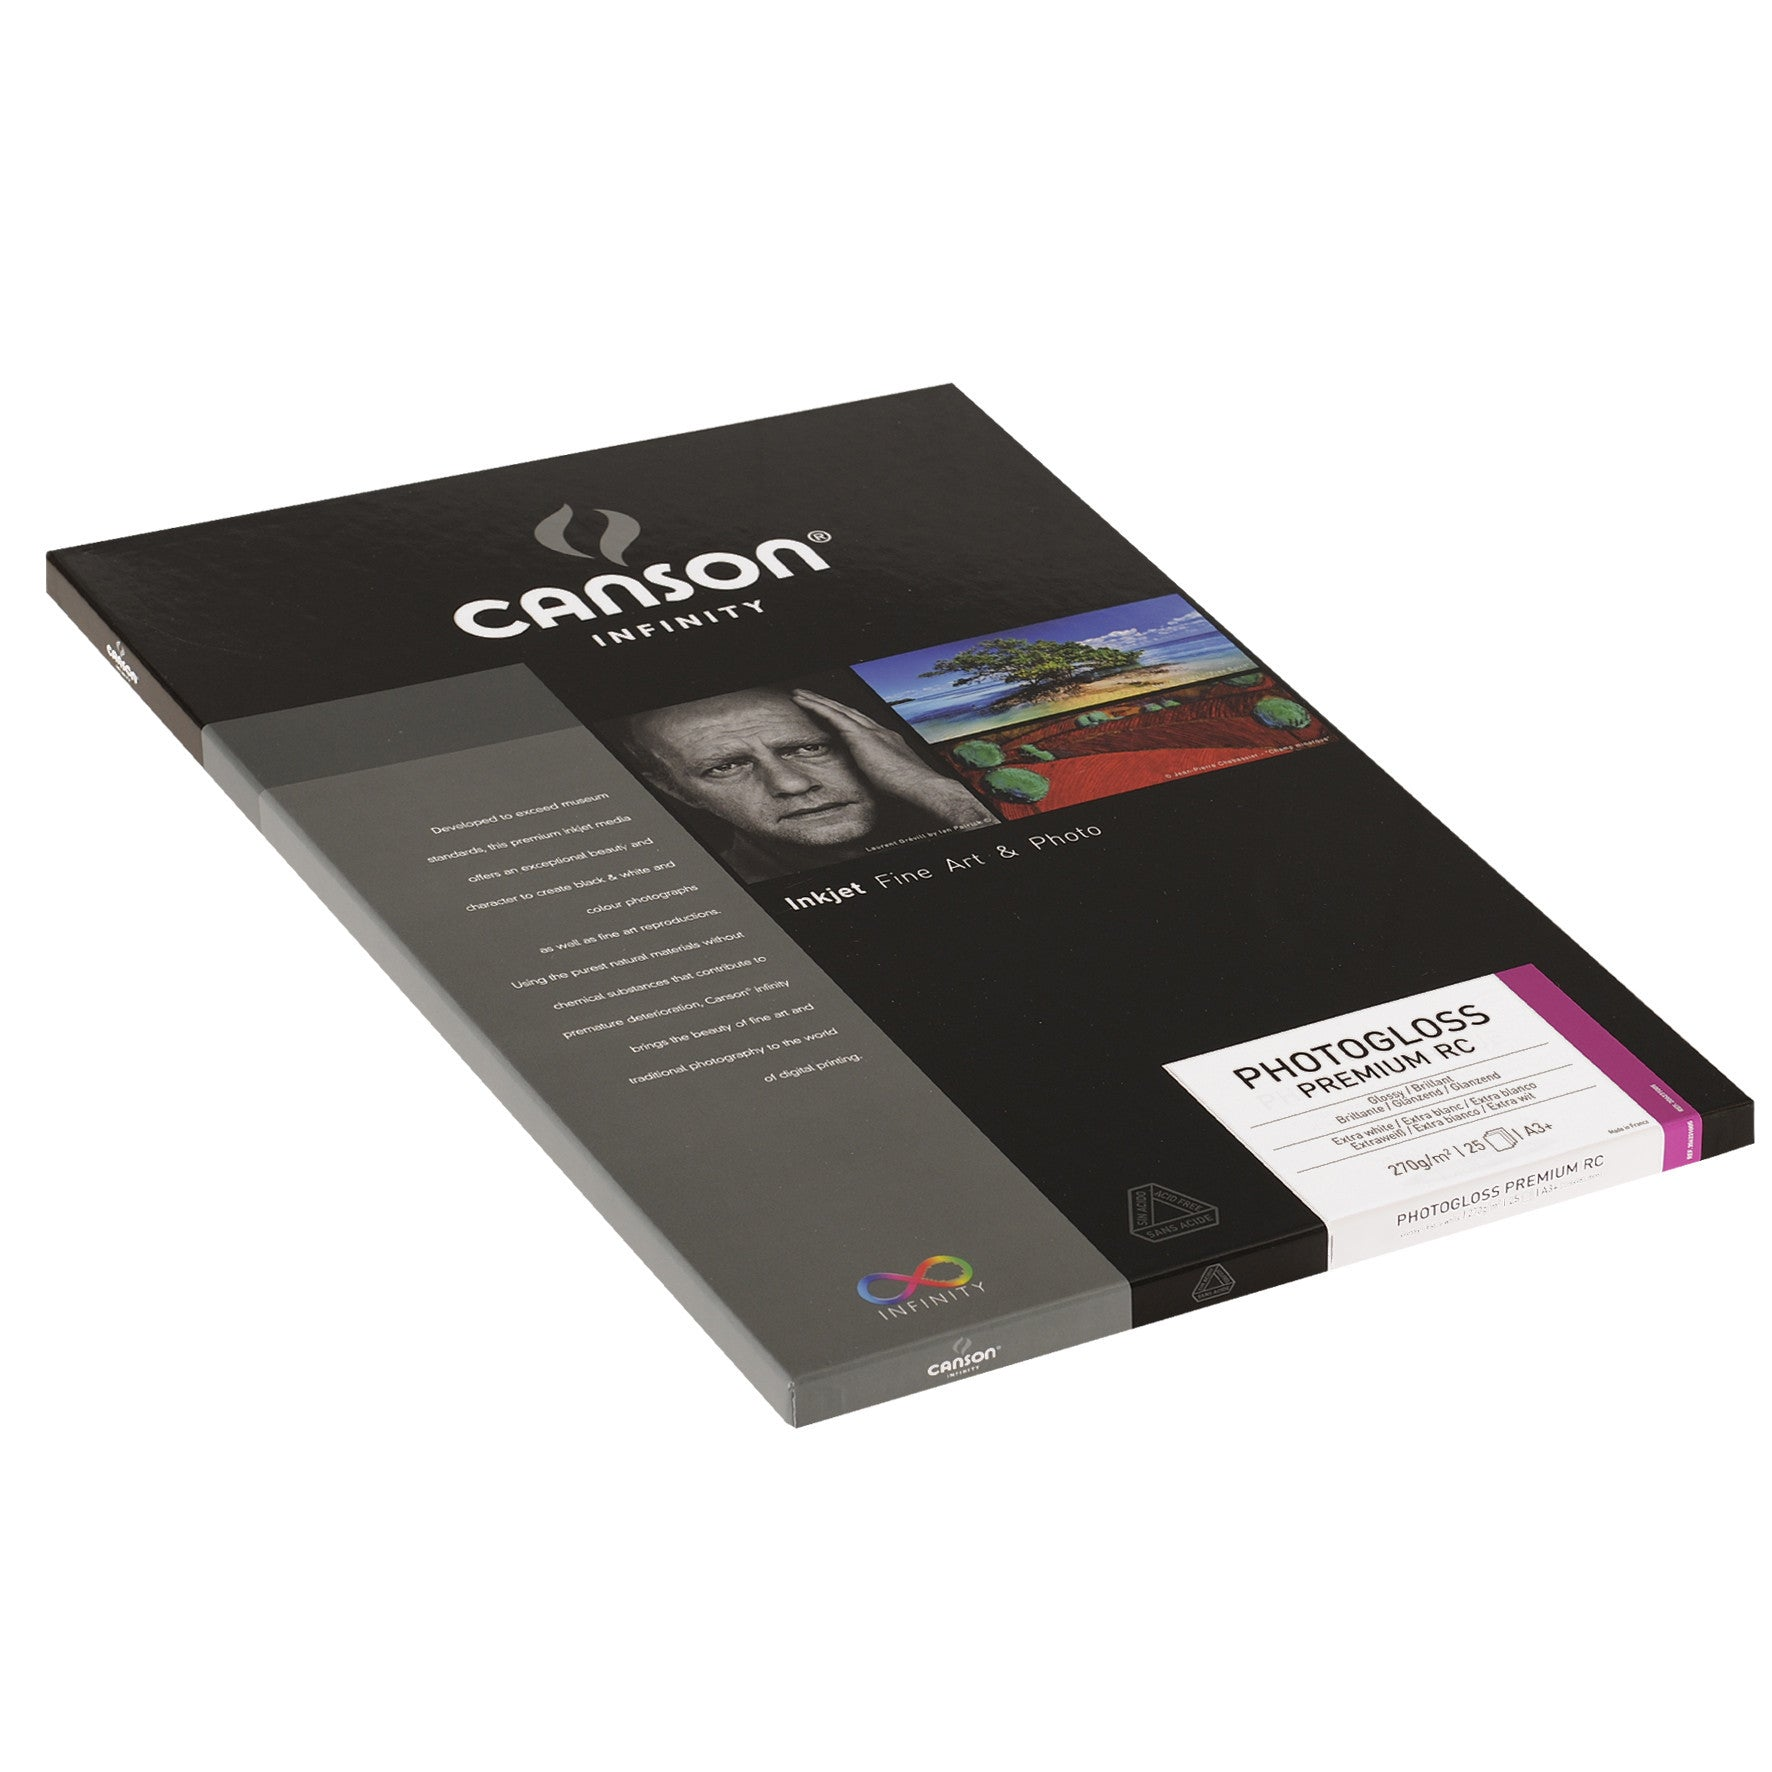 Canson Infinity Photo Gloss Premium RC - 270gsm - A3+ - 25 sheets